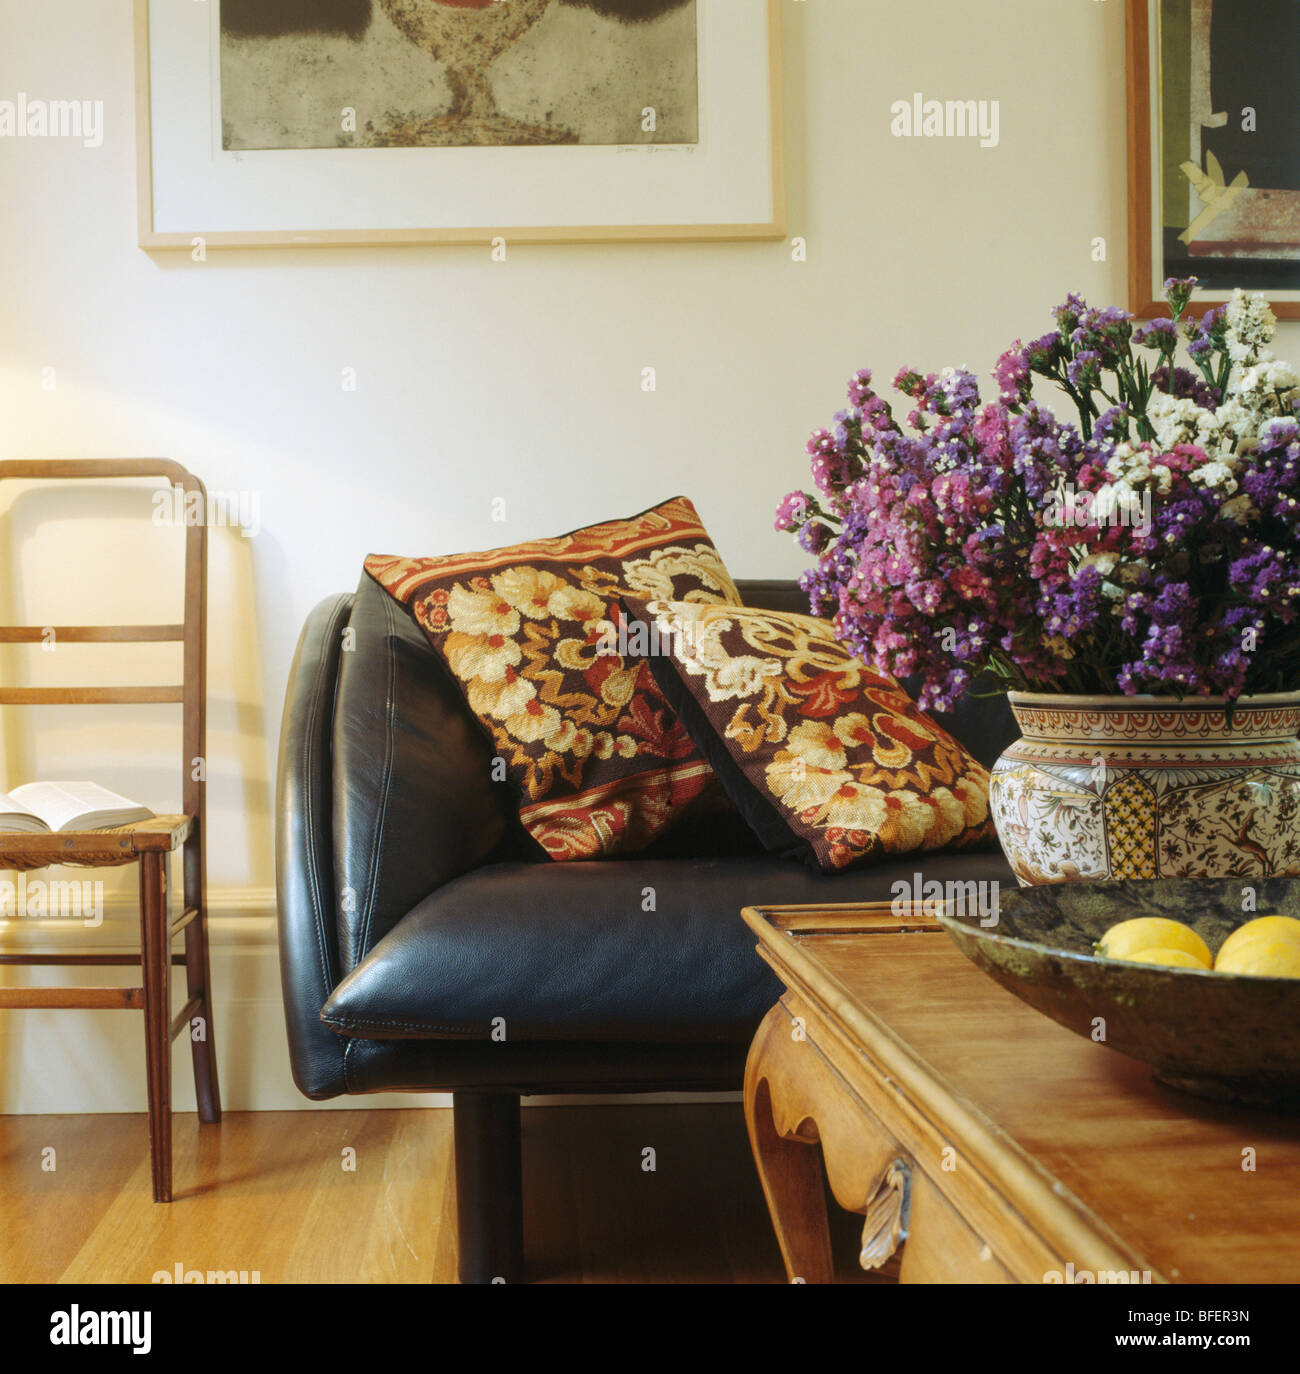 Dried Flower Arrangement On Table In Living Room With Tapestry Cushions On Leather  Sofa